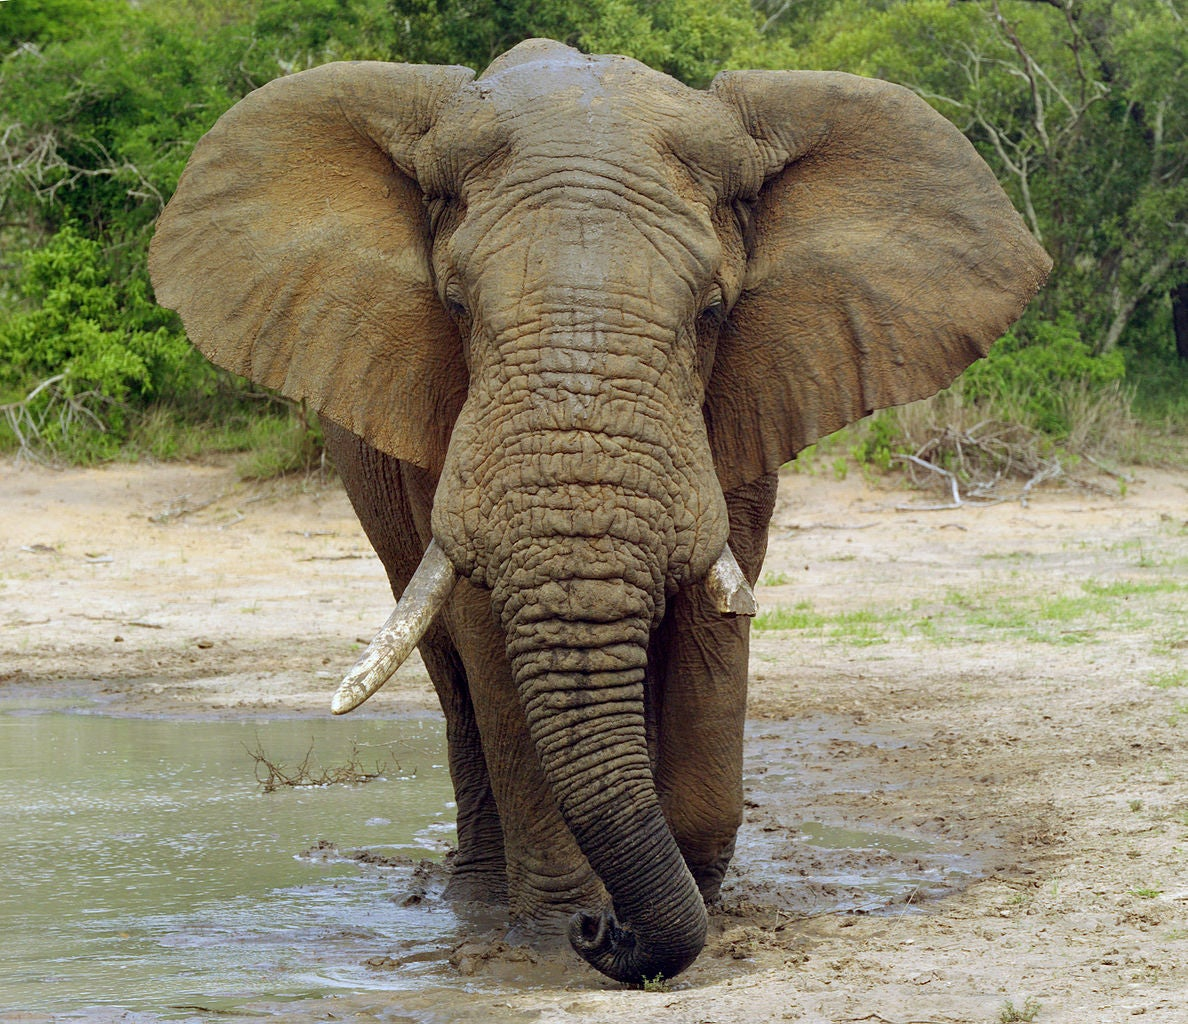 Found: A Gene That Prevents Elephants From Getting Cancer